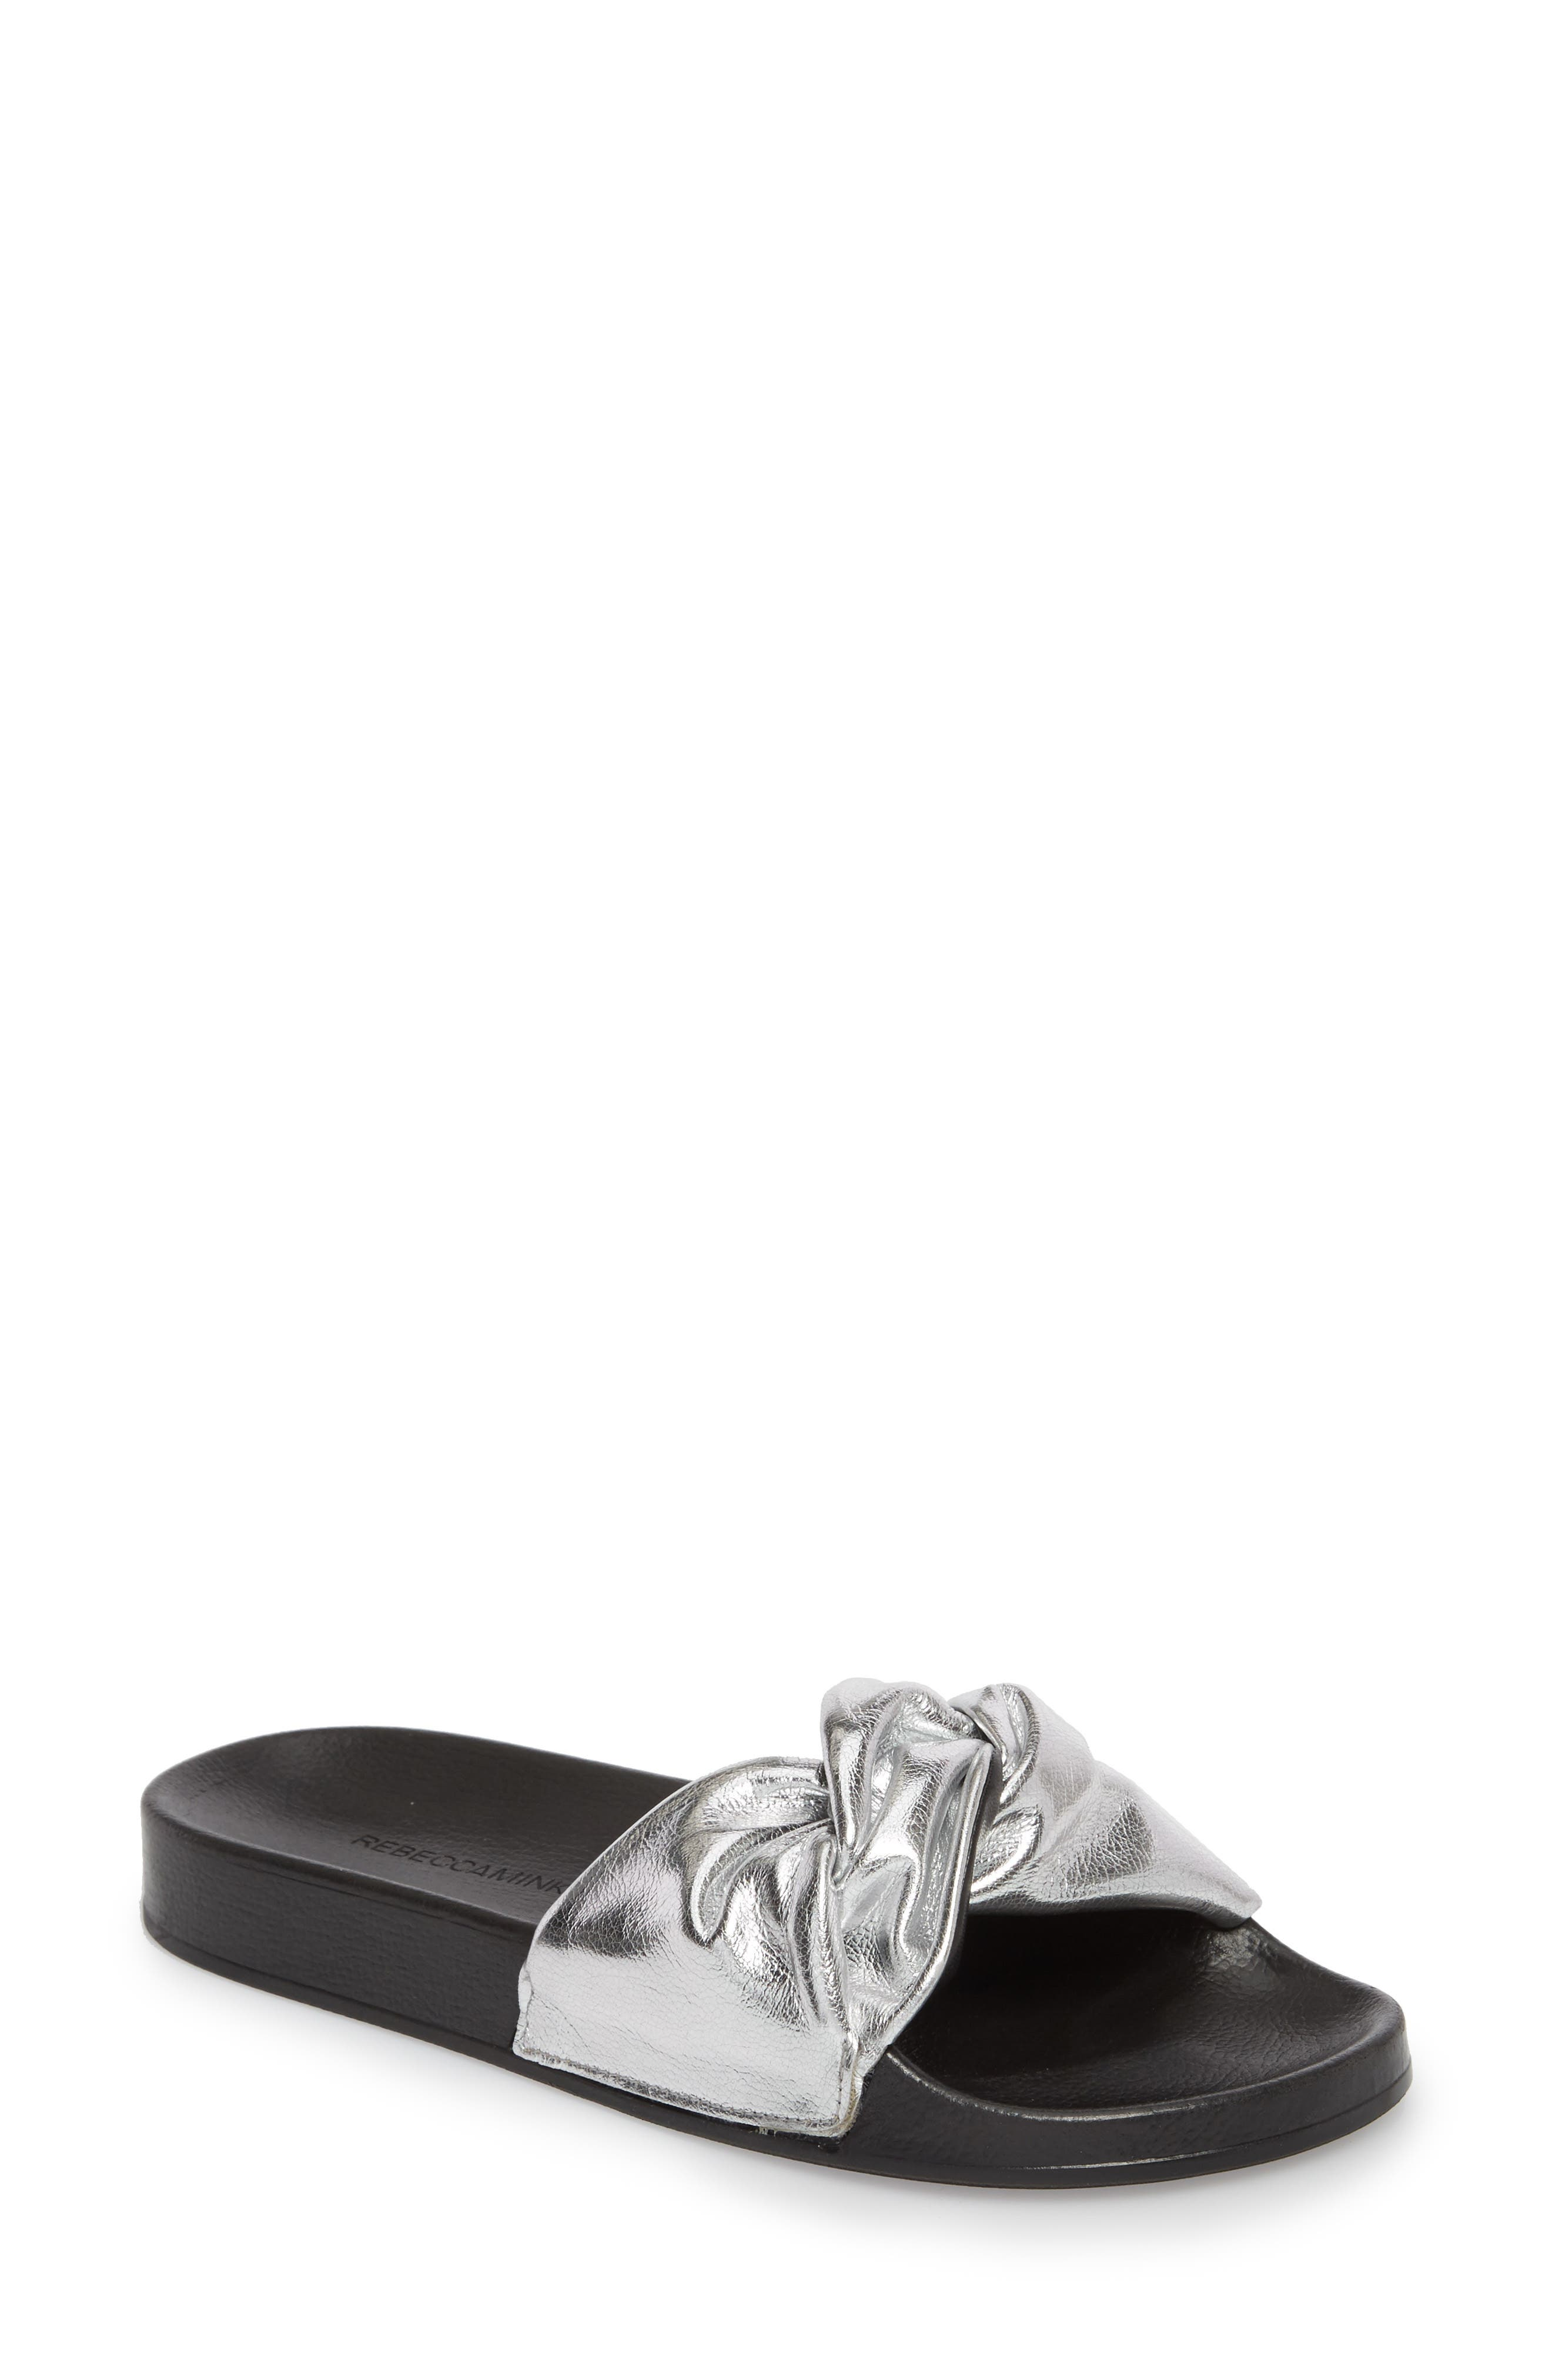 Samara Slide Sandal,                         Main,                         color, 040